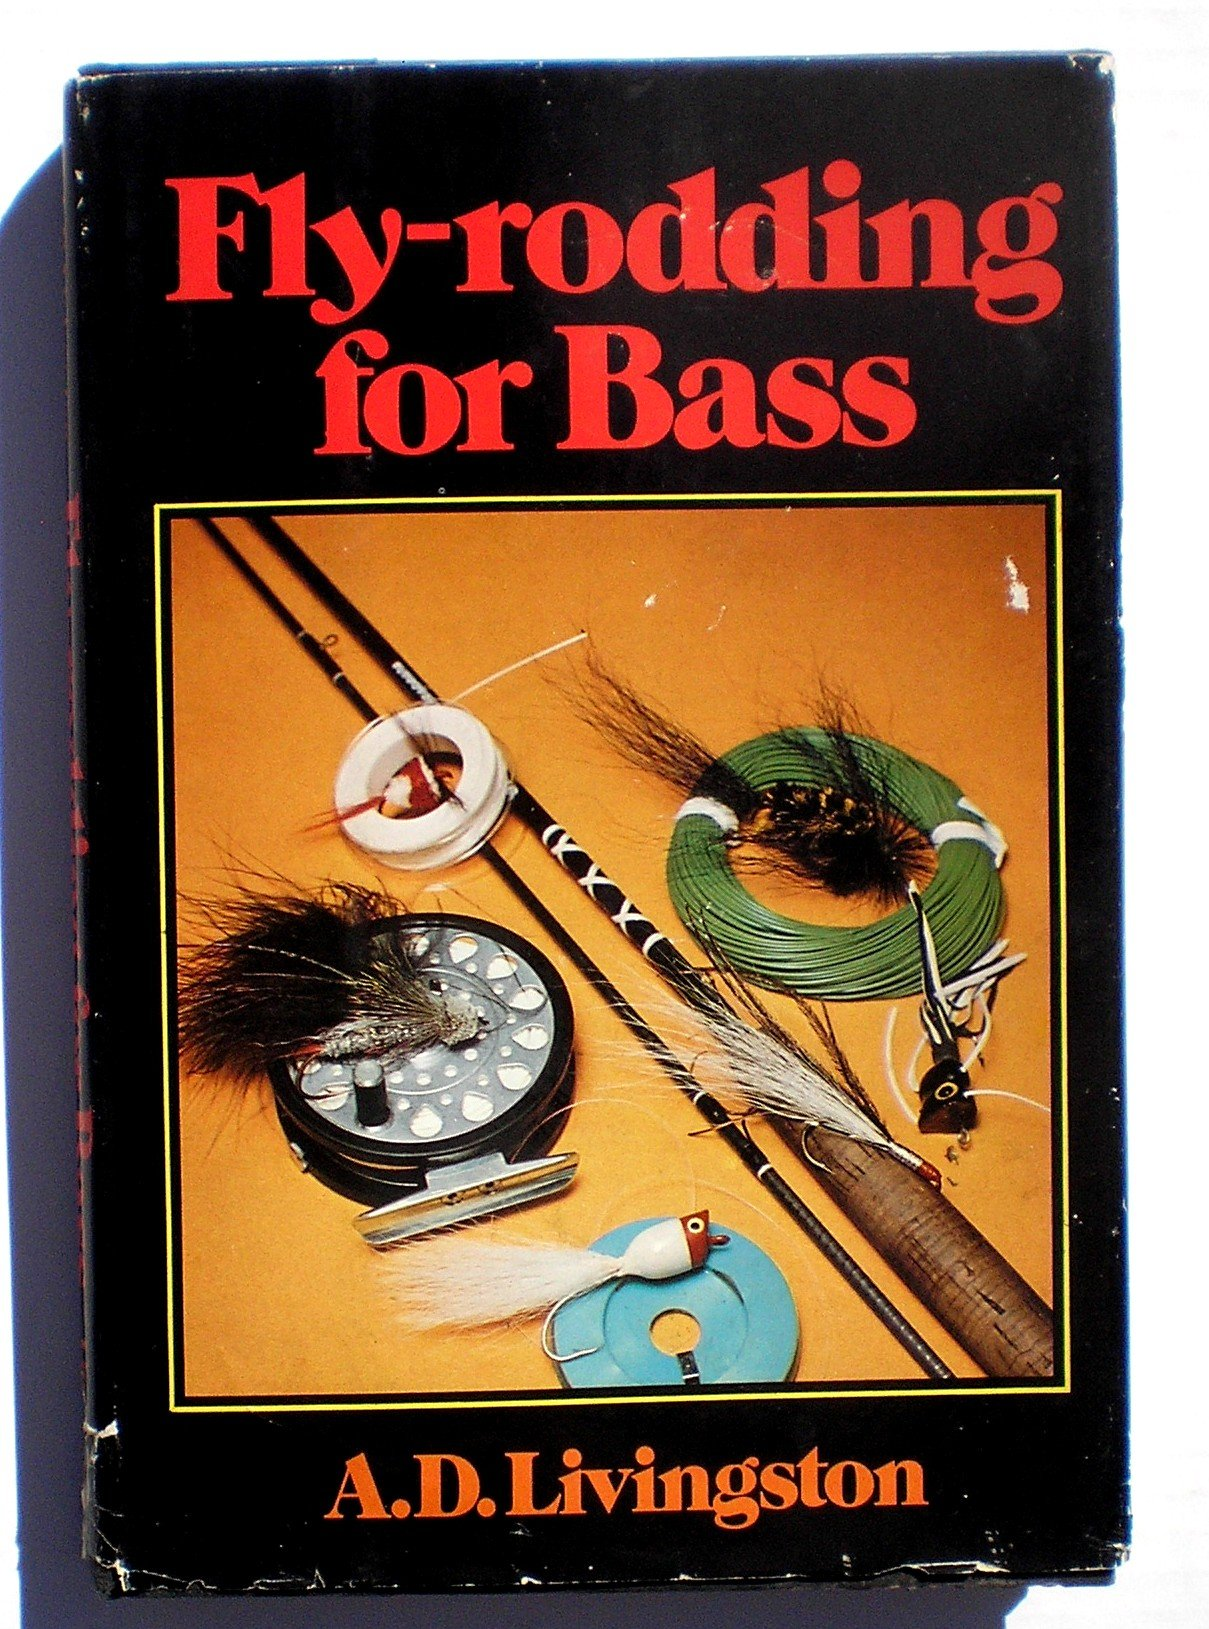 Fly-rodding for bass, Livingston, A. D